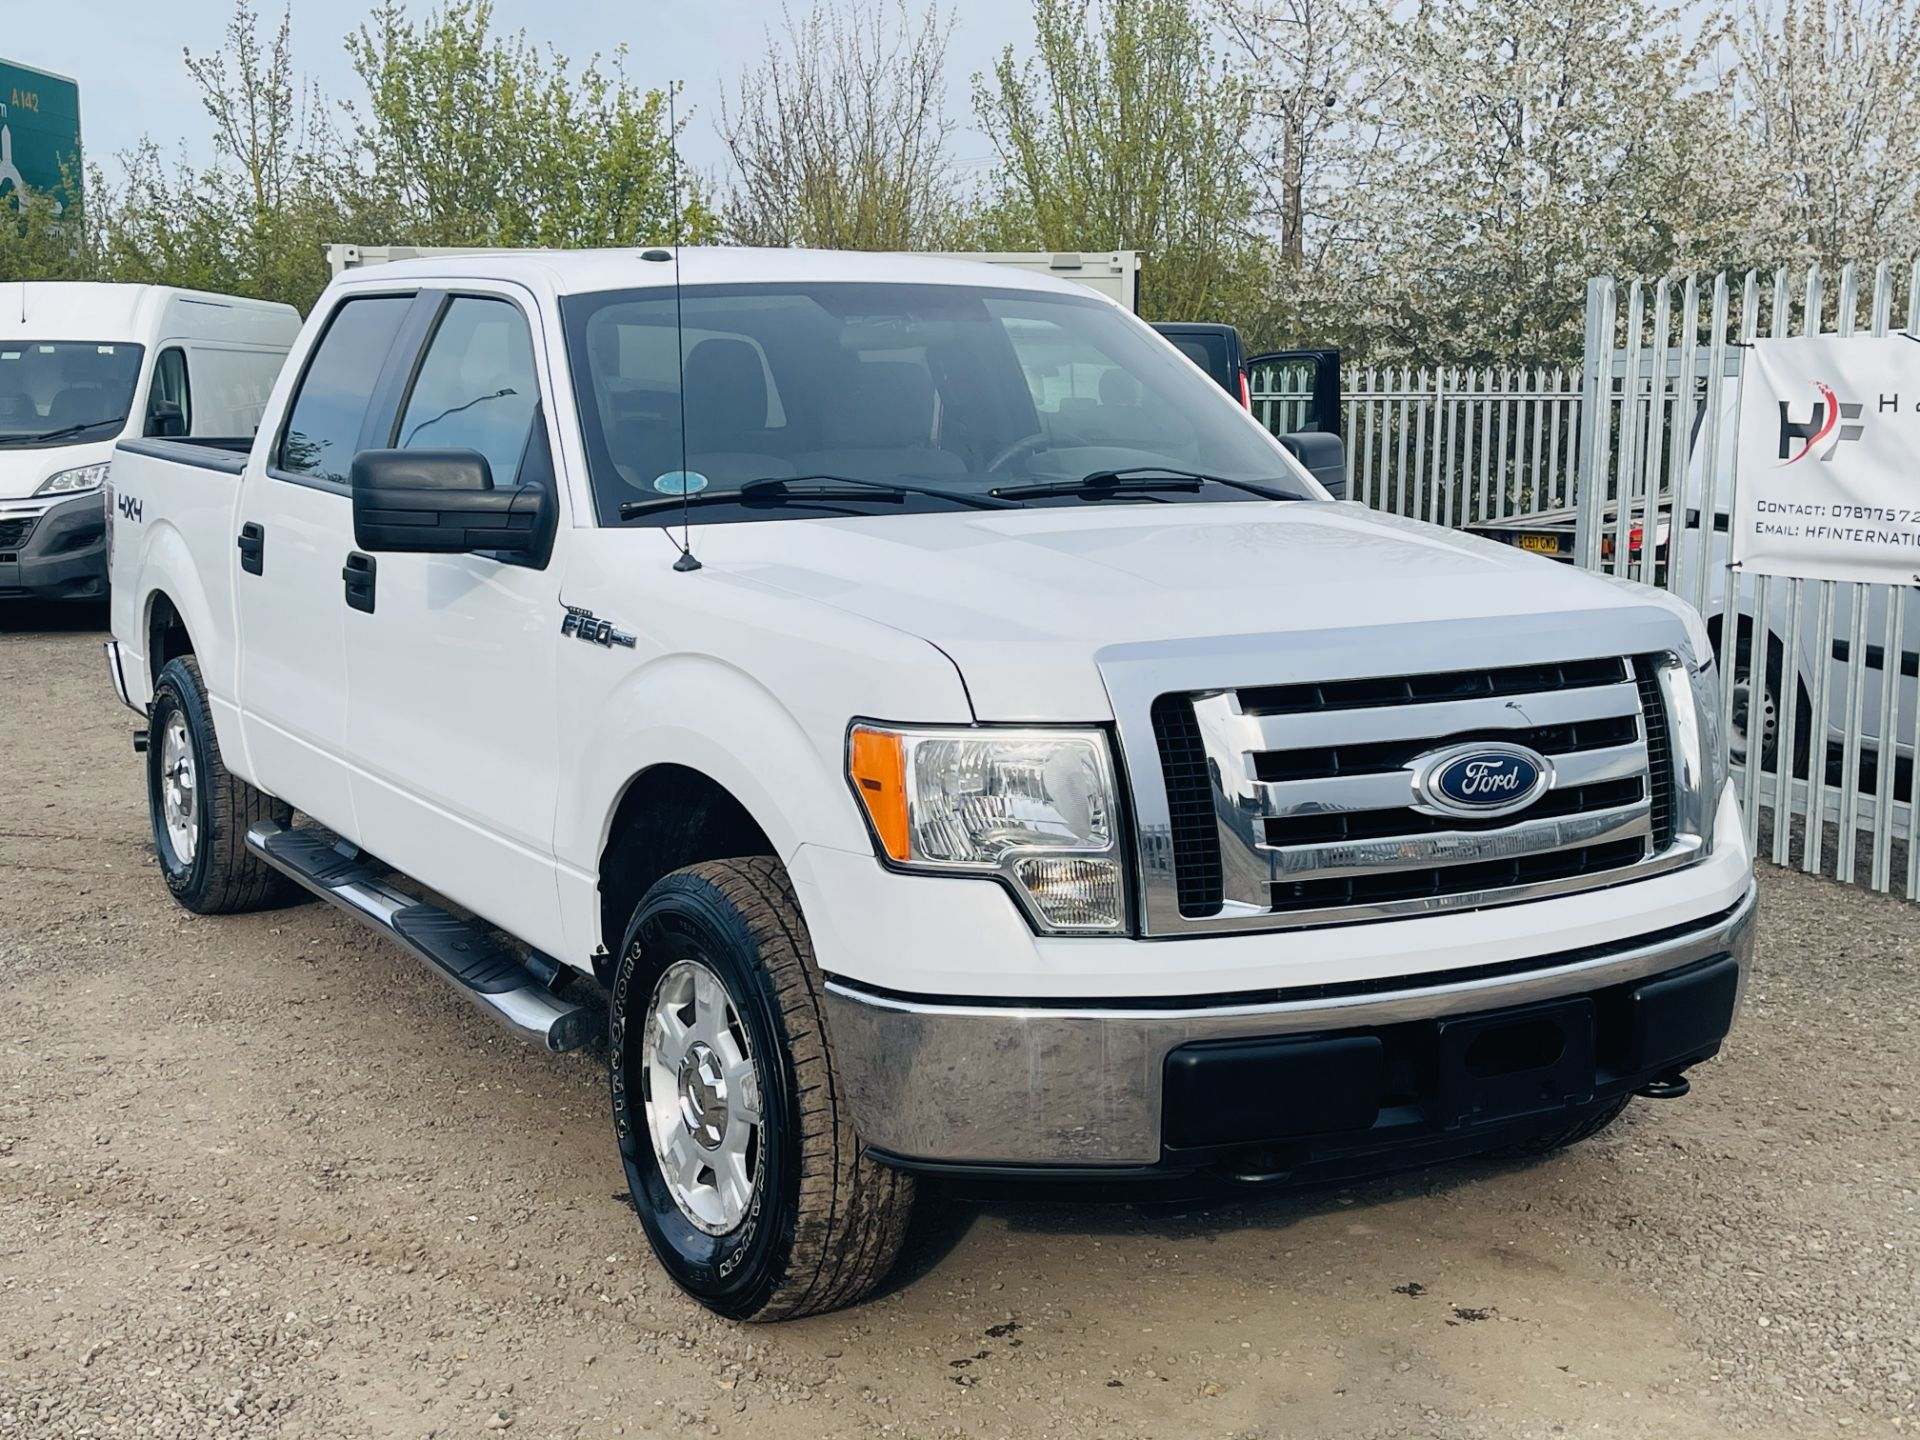 Ford F-150 XLT 4.6L V8 Super-crew 4WD 2010 ' 2010 Year' 6 Seats - Air con - NO RESERVE - Image 2 of 24